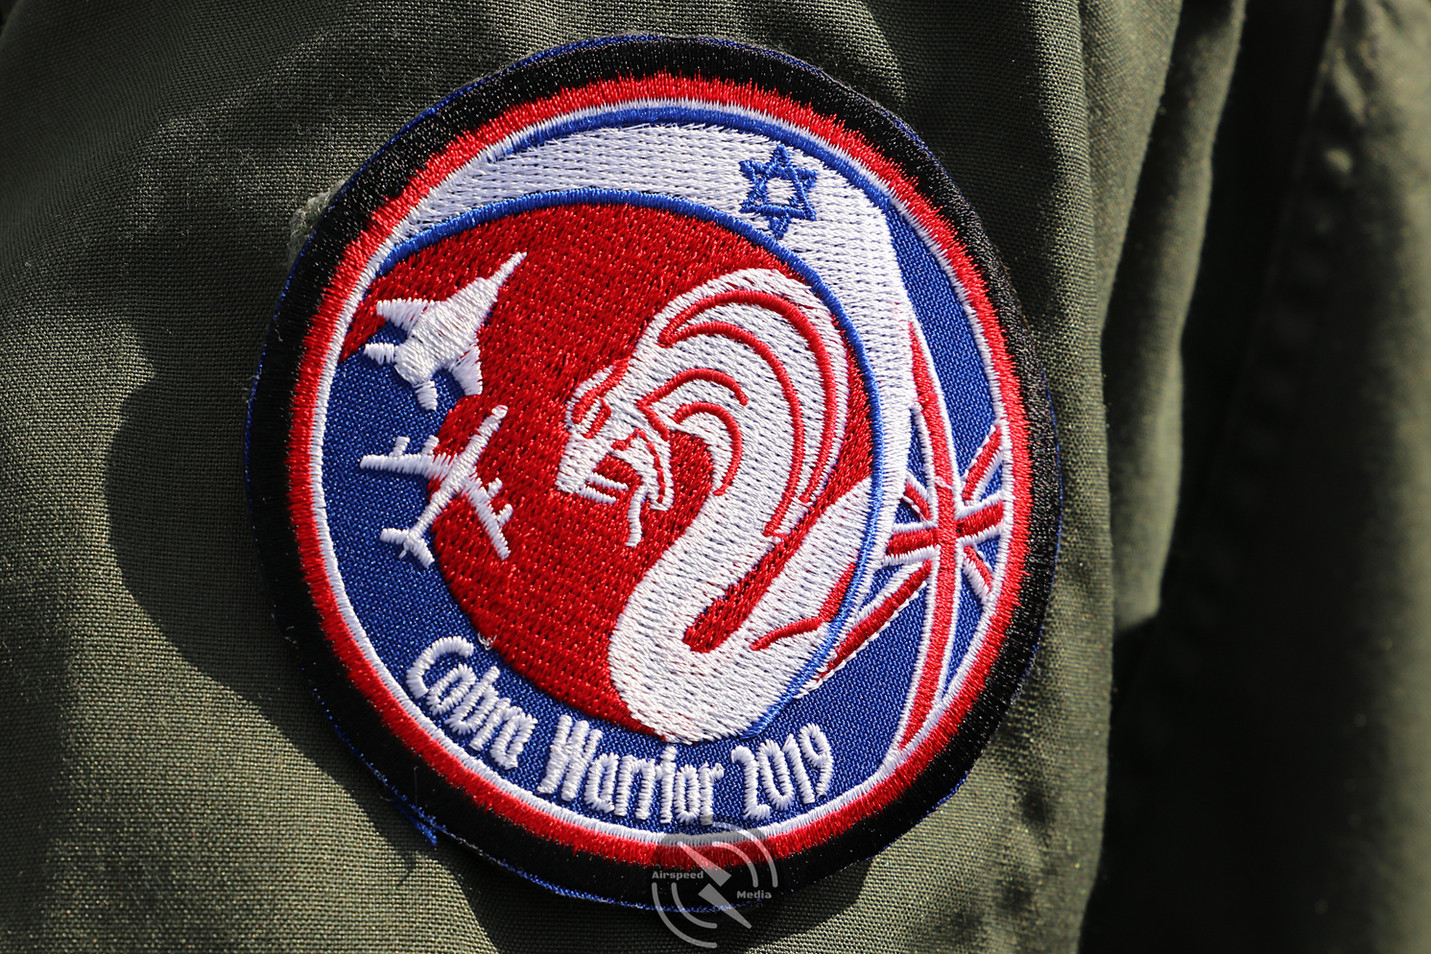 Israeli Air Force Cobra Warrior patch 20